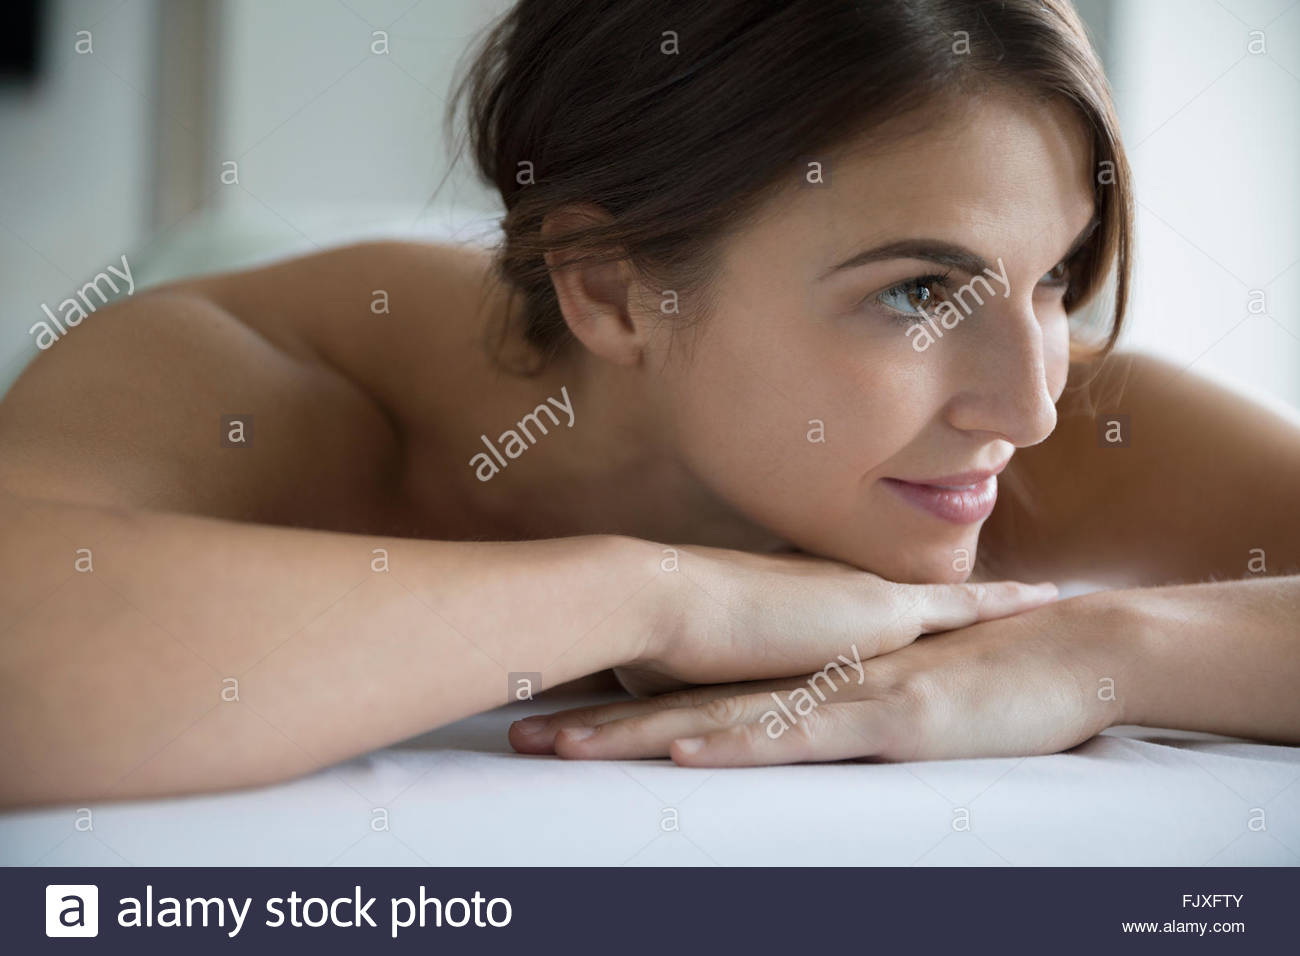 Smiling woman laying on massage table - Stock Image